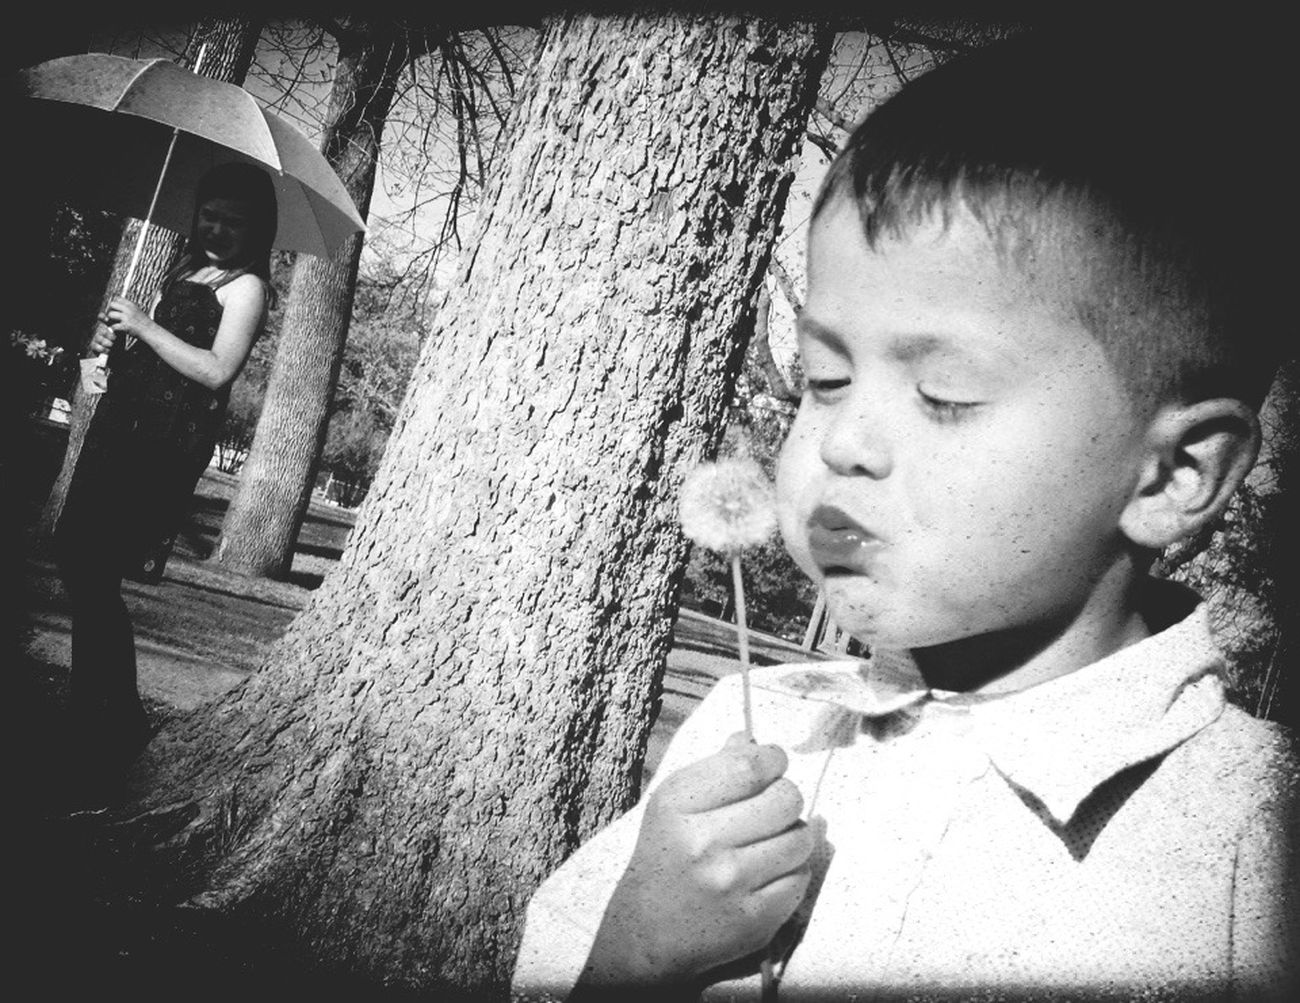 Showcase April Relaxing Dandelion Dandelions Dandelionfluff Dandelion Collection Make A Wish Make A Wish ! Make A Wish<3 Nephew  Nephew ♡ Cutenessoverload Nephew ♥ Tulsa, Oklahoma Tulsa,oklahoma Tulsa, OK The Portraitist - 2016 EyeEm Awards Home Is Where The Art Is Making Wishes Make A Wish!